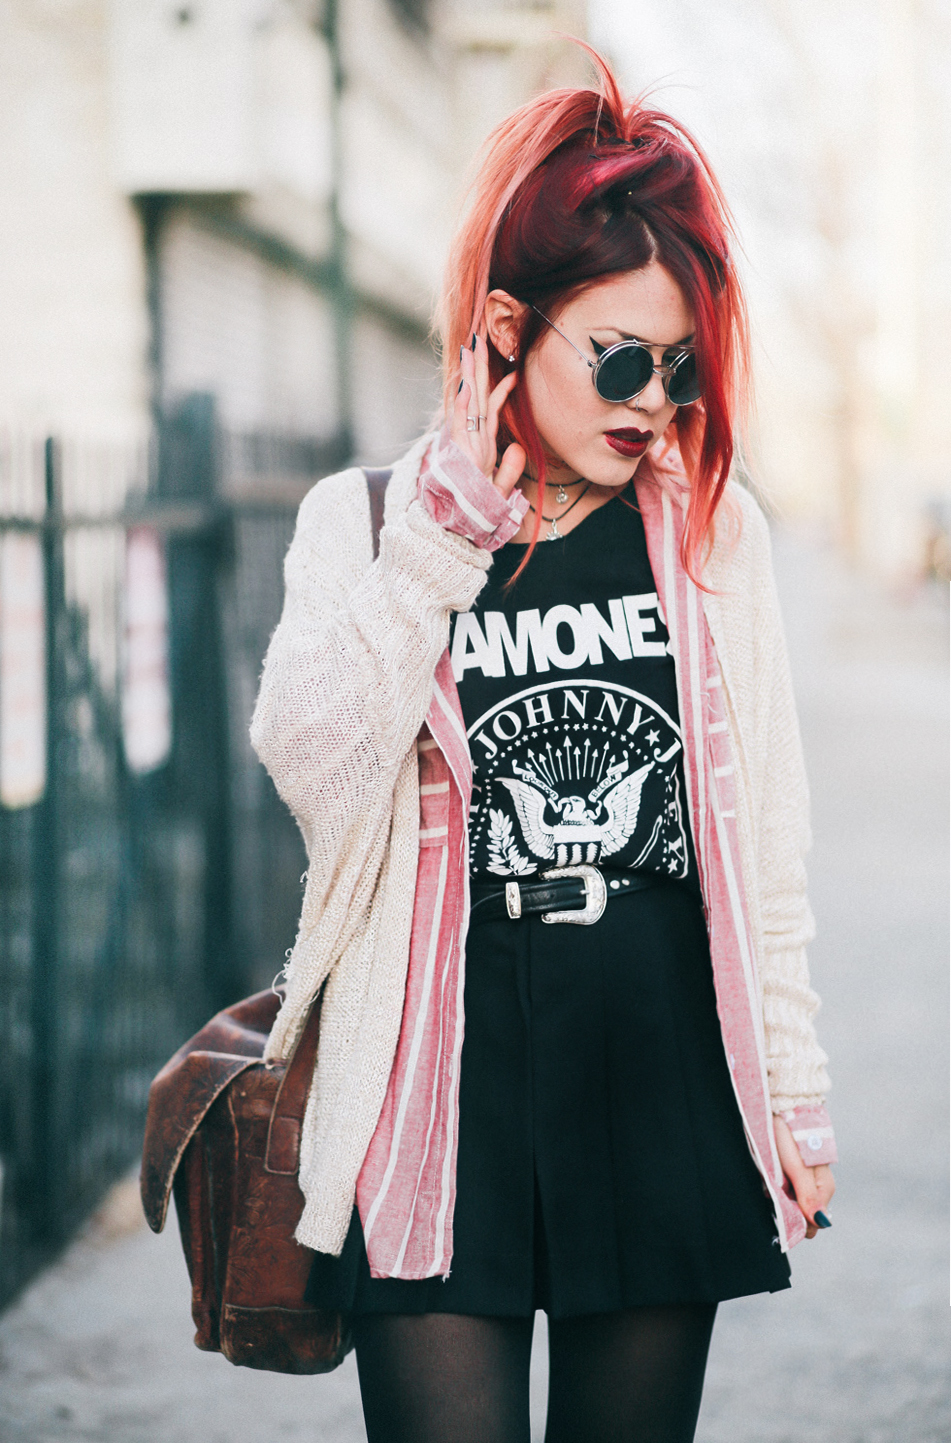 Le Happy wearing Ramones tank and a pleated skirt